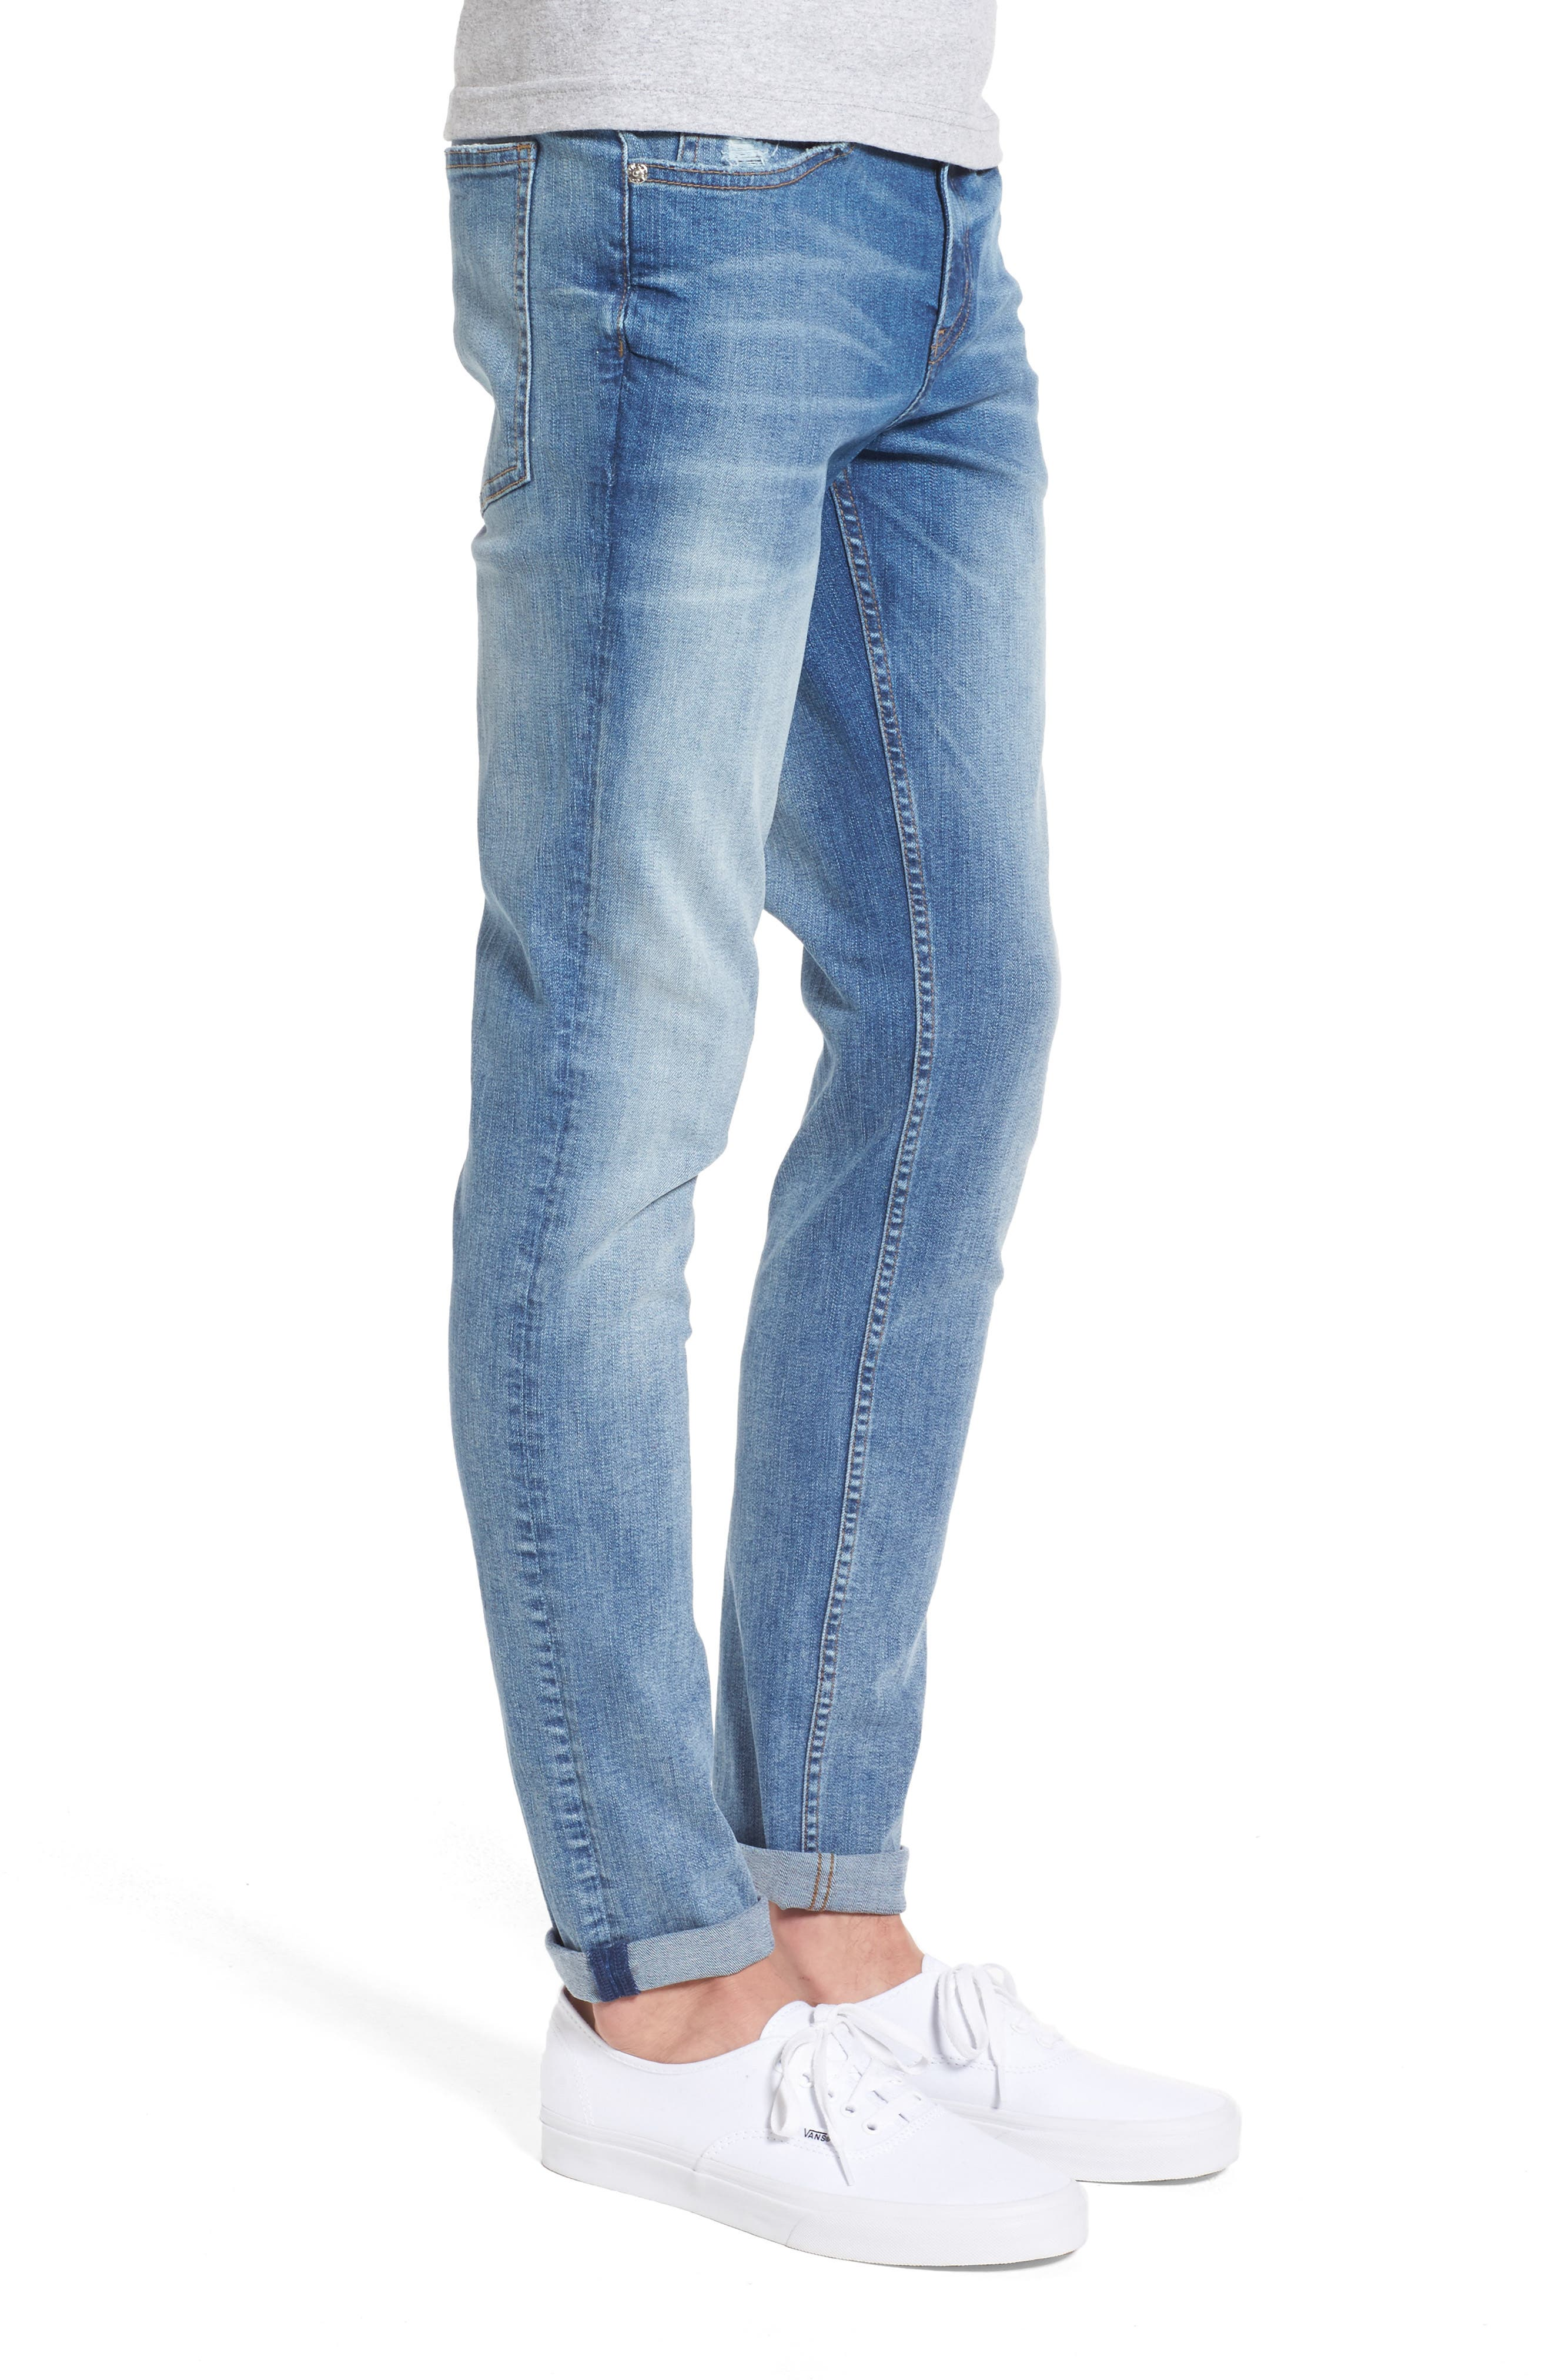 Tight Skinny Fit Jeans,                             Alternate thumbnail 3, color,                             428